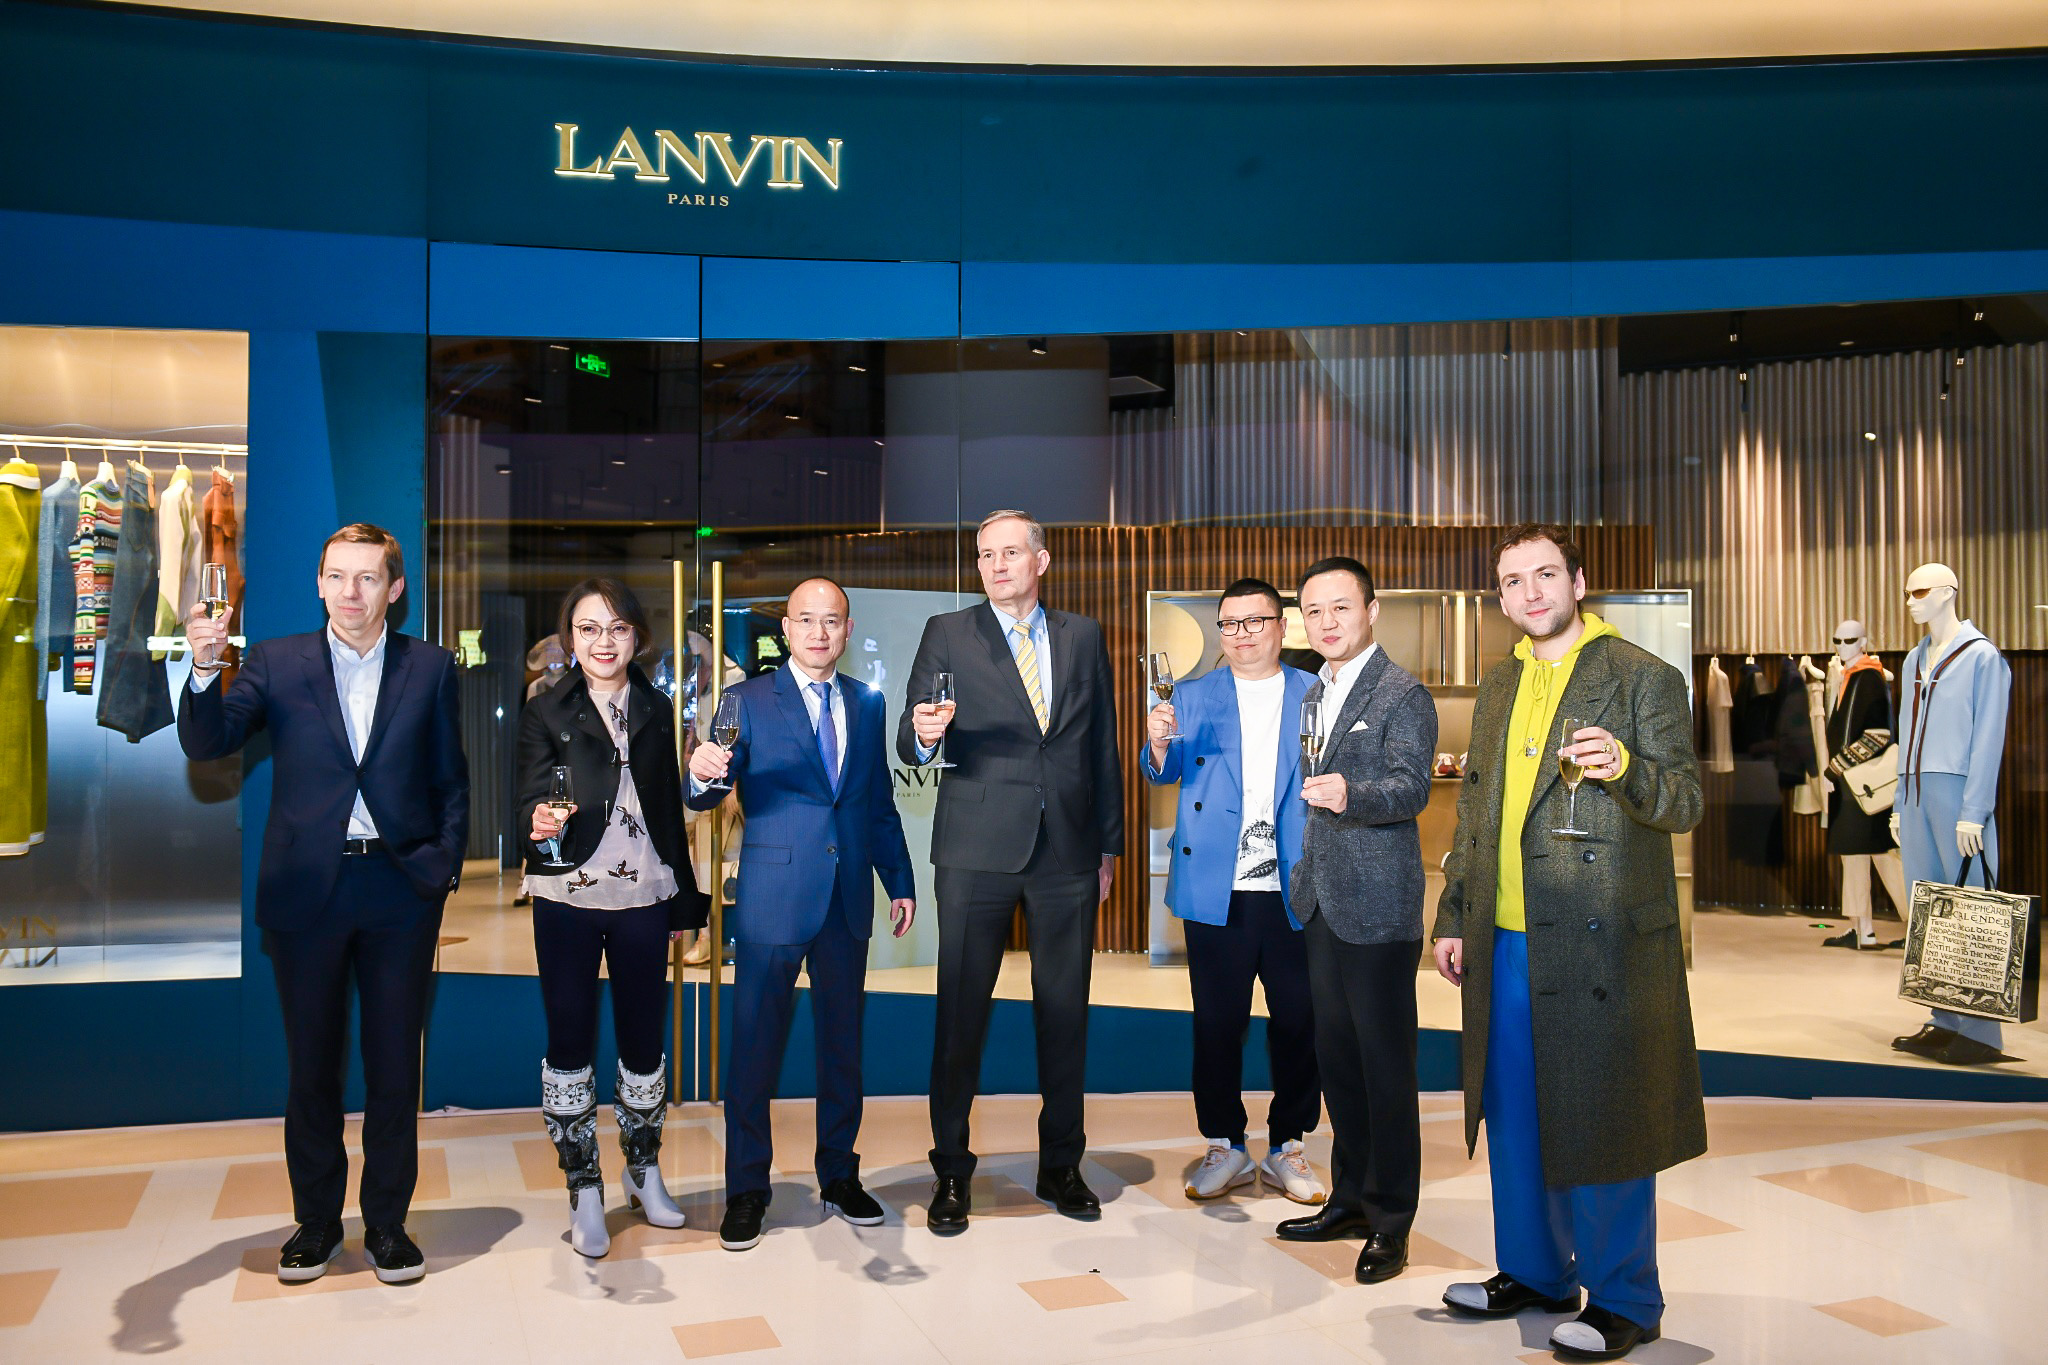 From left to right, Jean-Philippe Hecquet, Joann Chen, Guangchang Guo, Laurent Bili, Xiaoliang Xu, Jianhao Chen, and Bruno Sialelli at the Lanvin Shanghai flagship opening